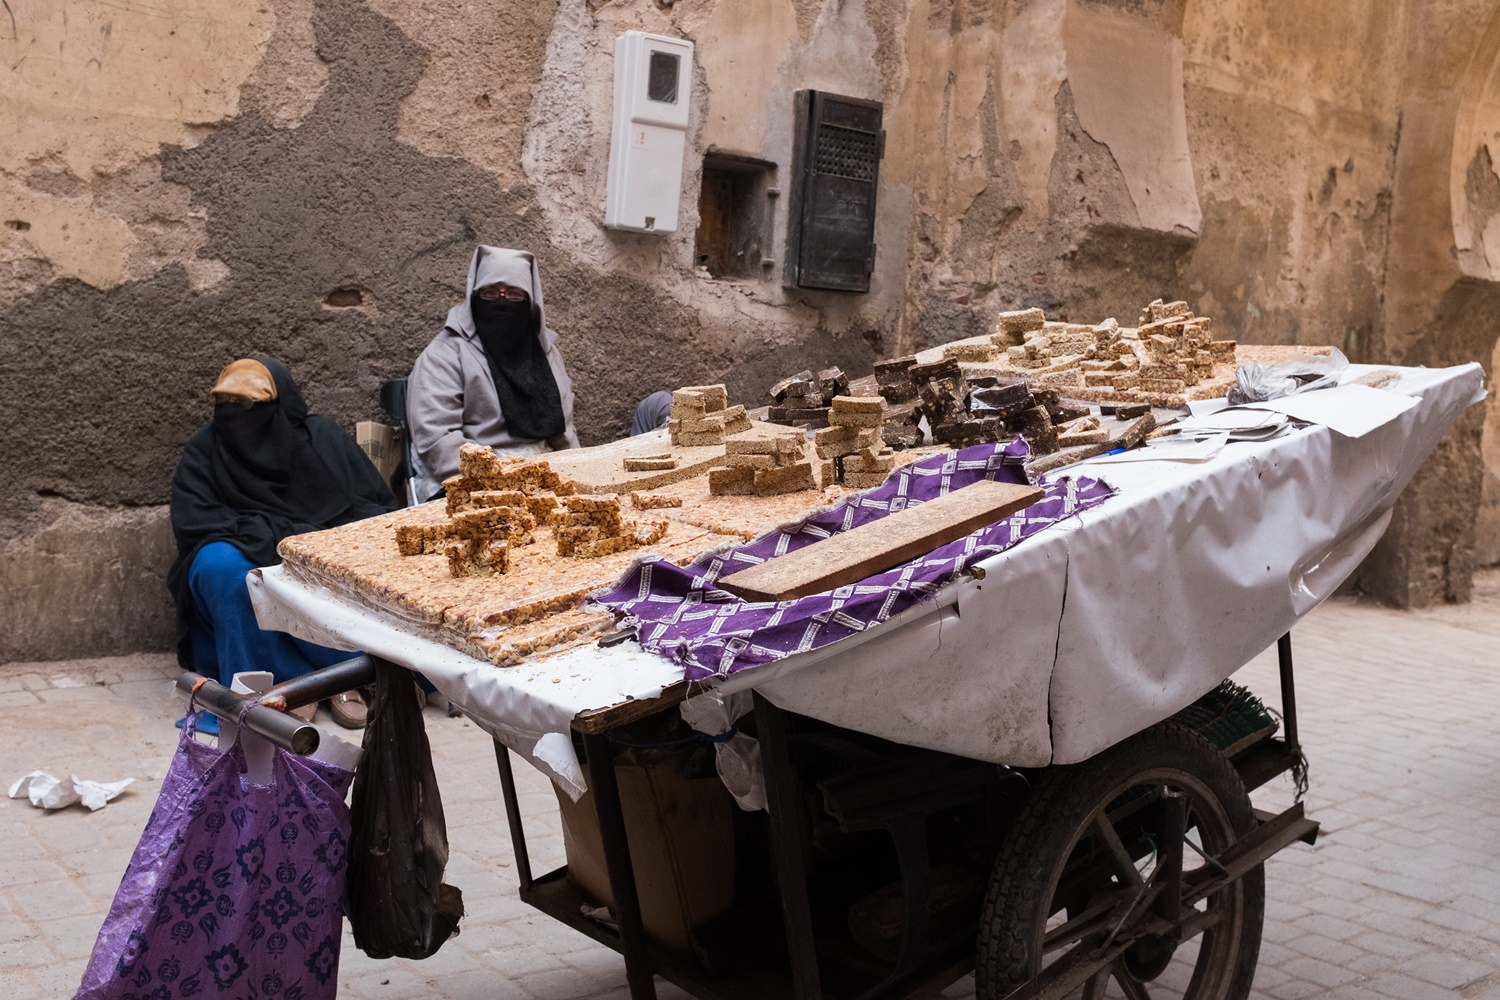 12. Nougat sold on the streets